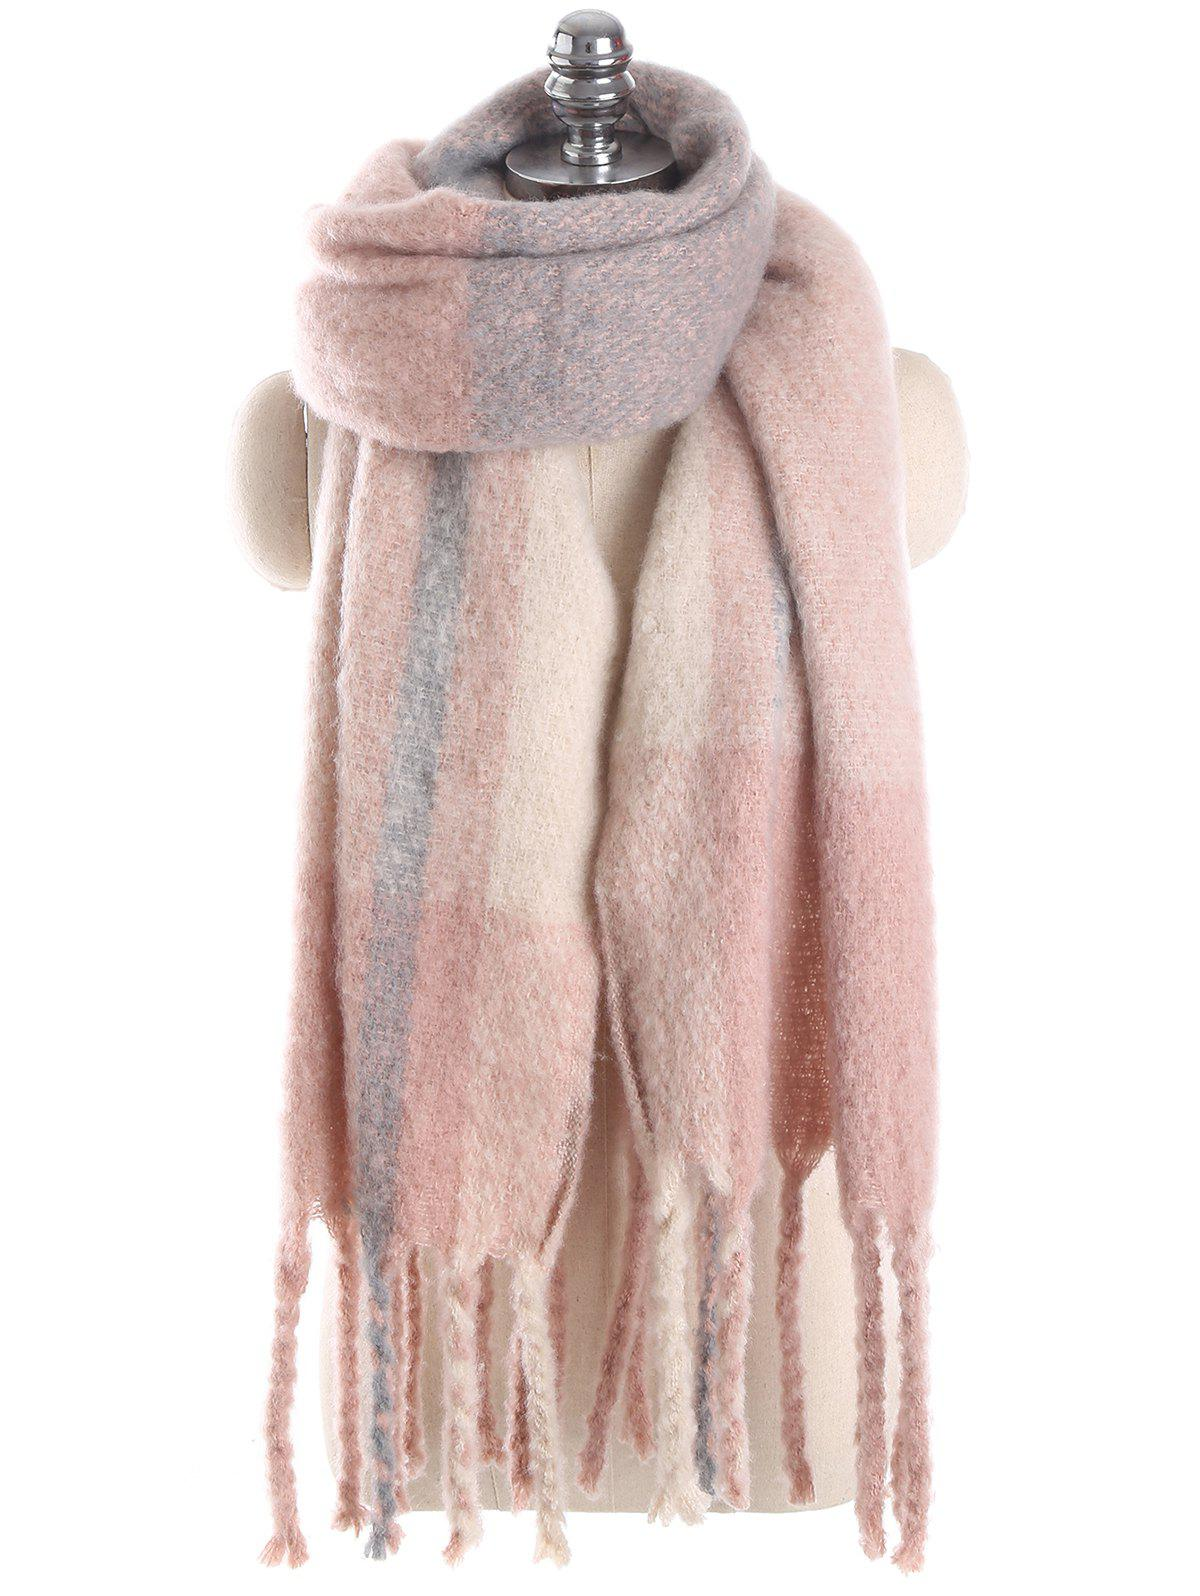 Winter Plaid Fringed Long Scarf - PINK ONE SZIE